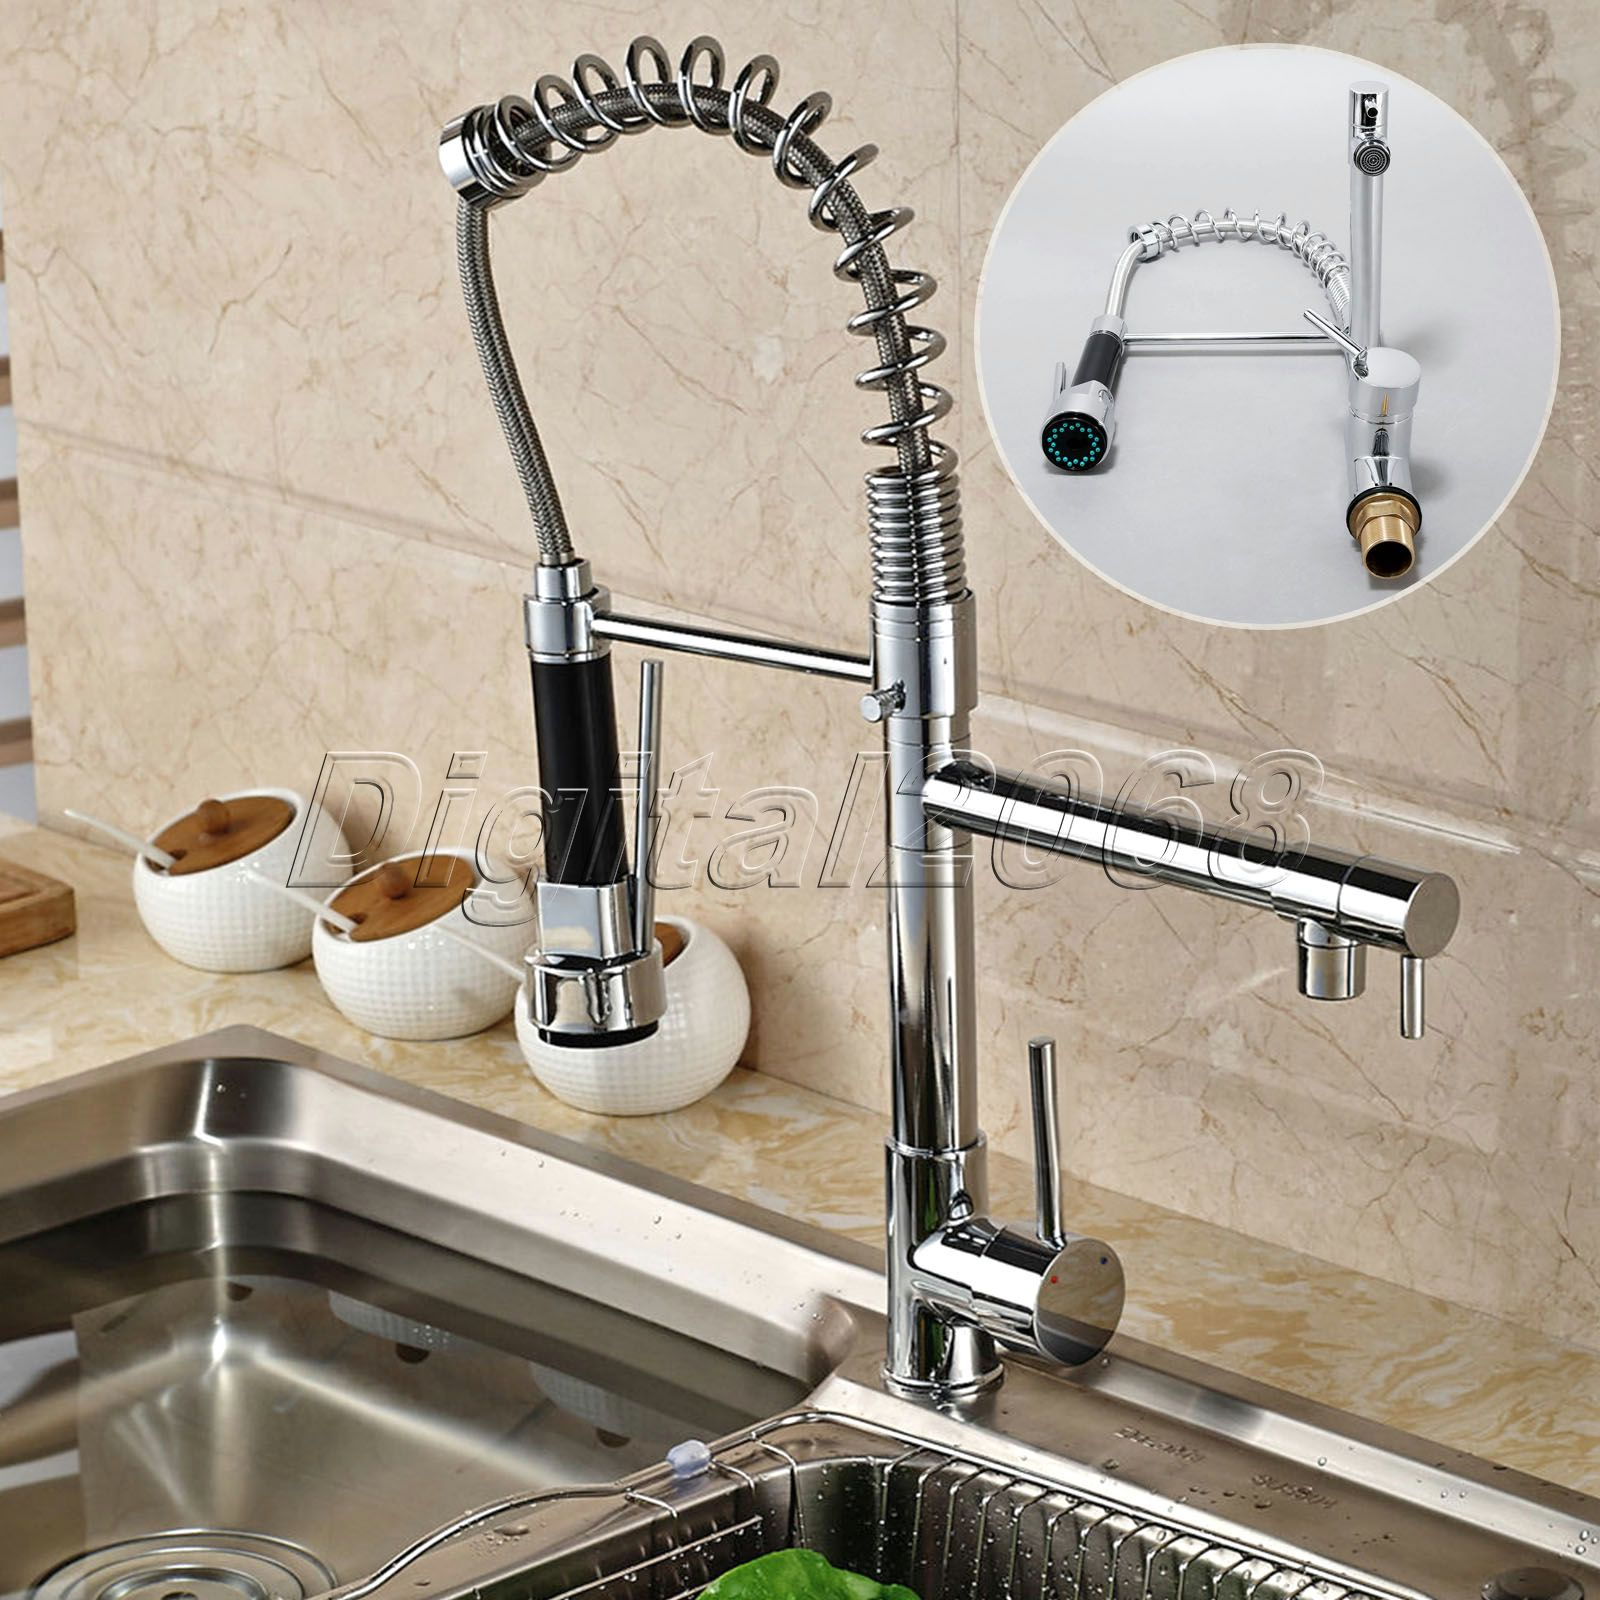 online wholesale kitchen mixer tap from china kitchen mixer